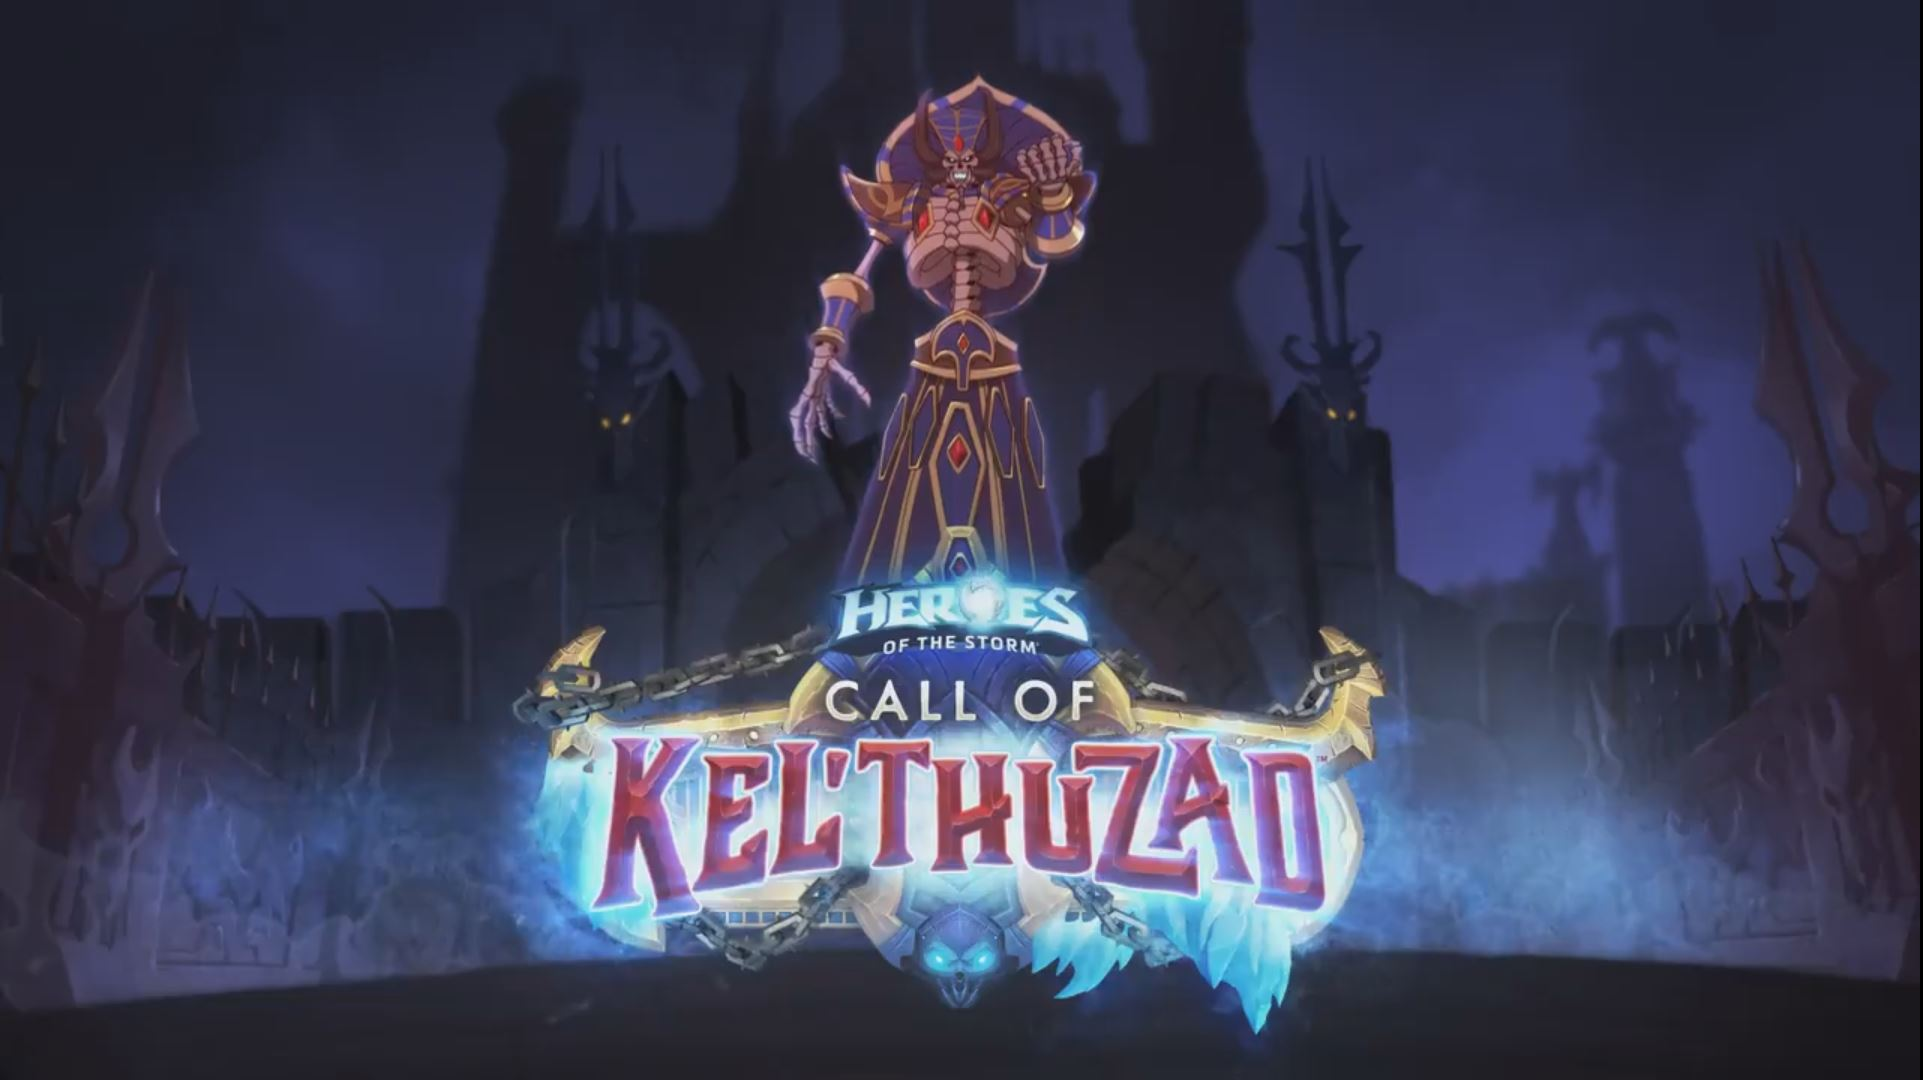 of the Storm Call of Kel'thuzad